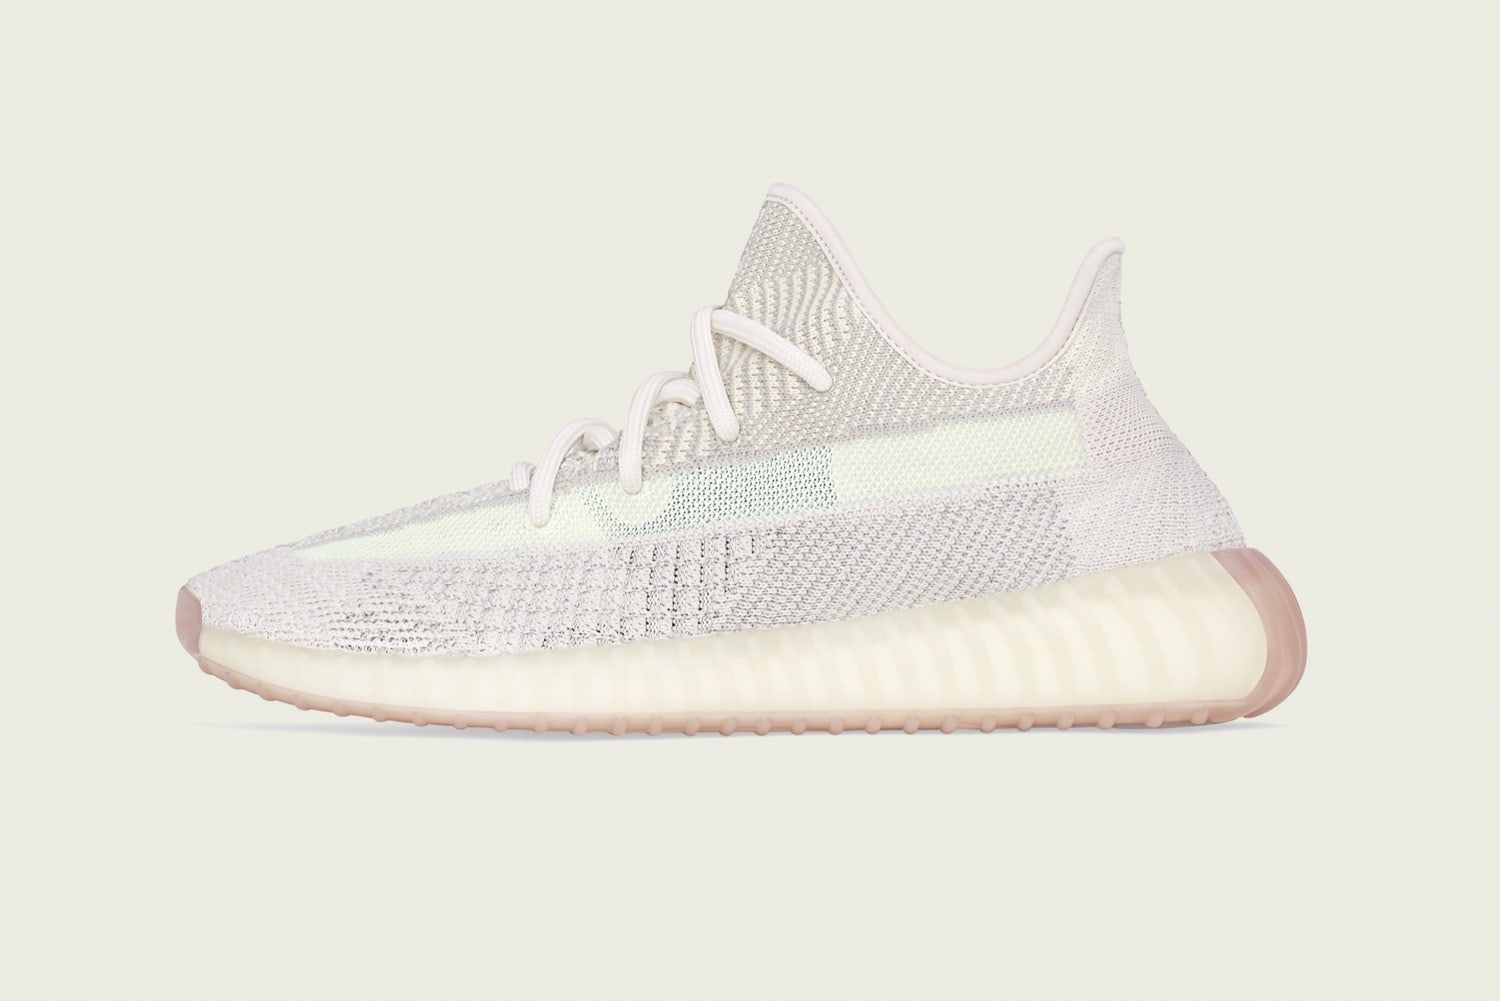 check-out fdf33 46eb4 END. Features | adidas + KANYE WEST YEEZY BOOST 350 V2 ...